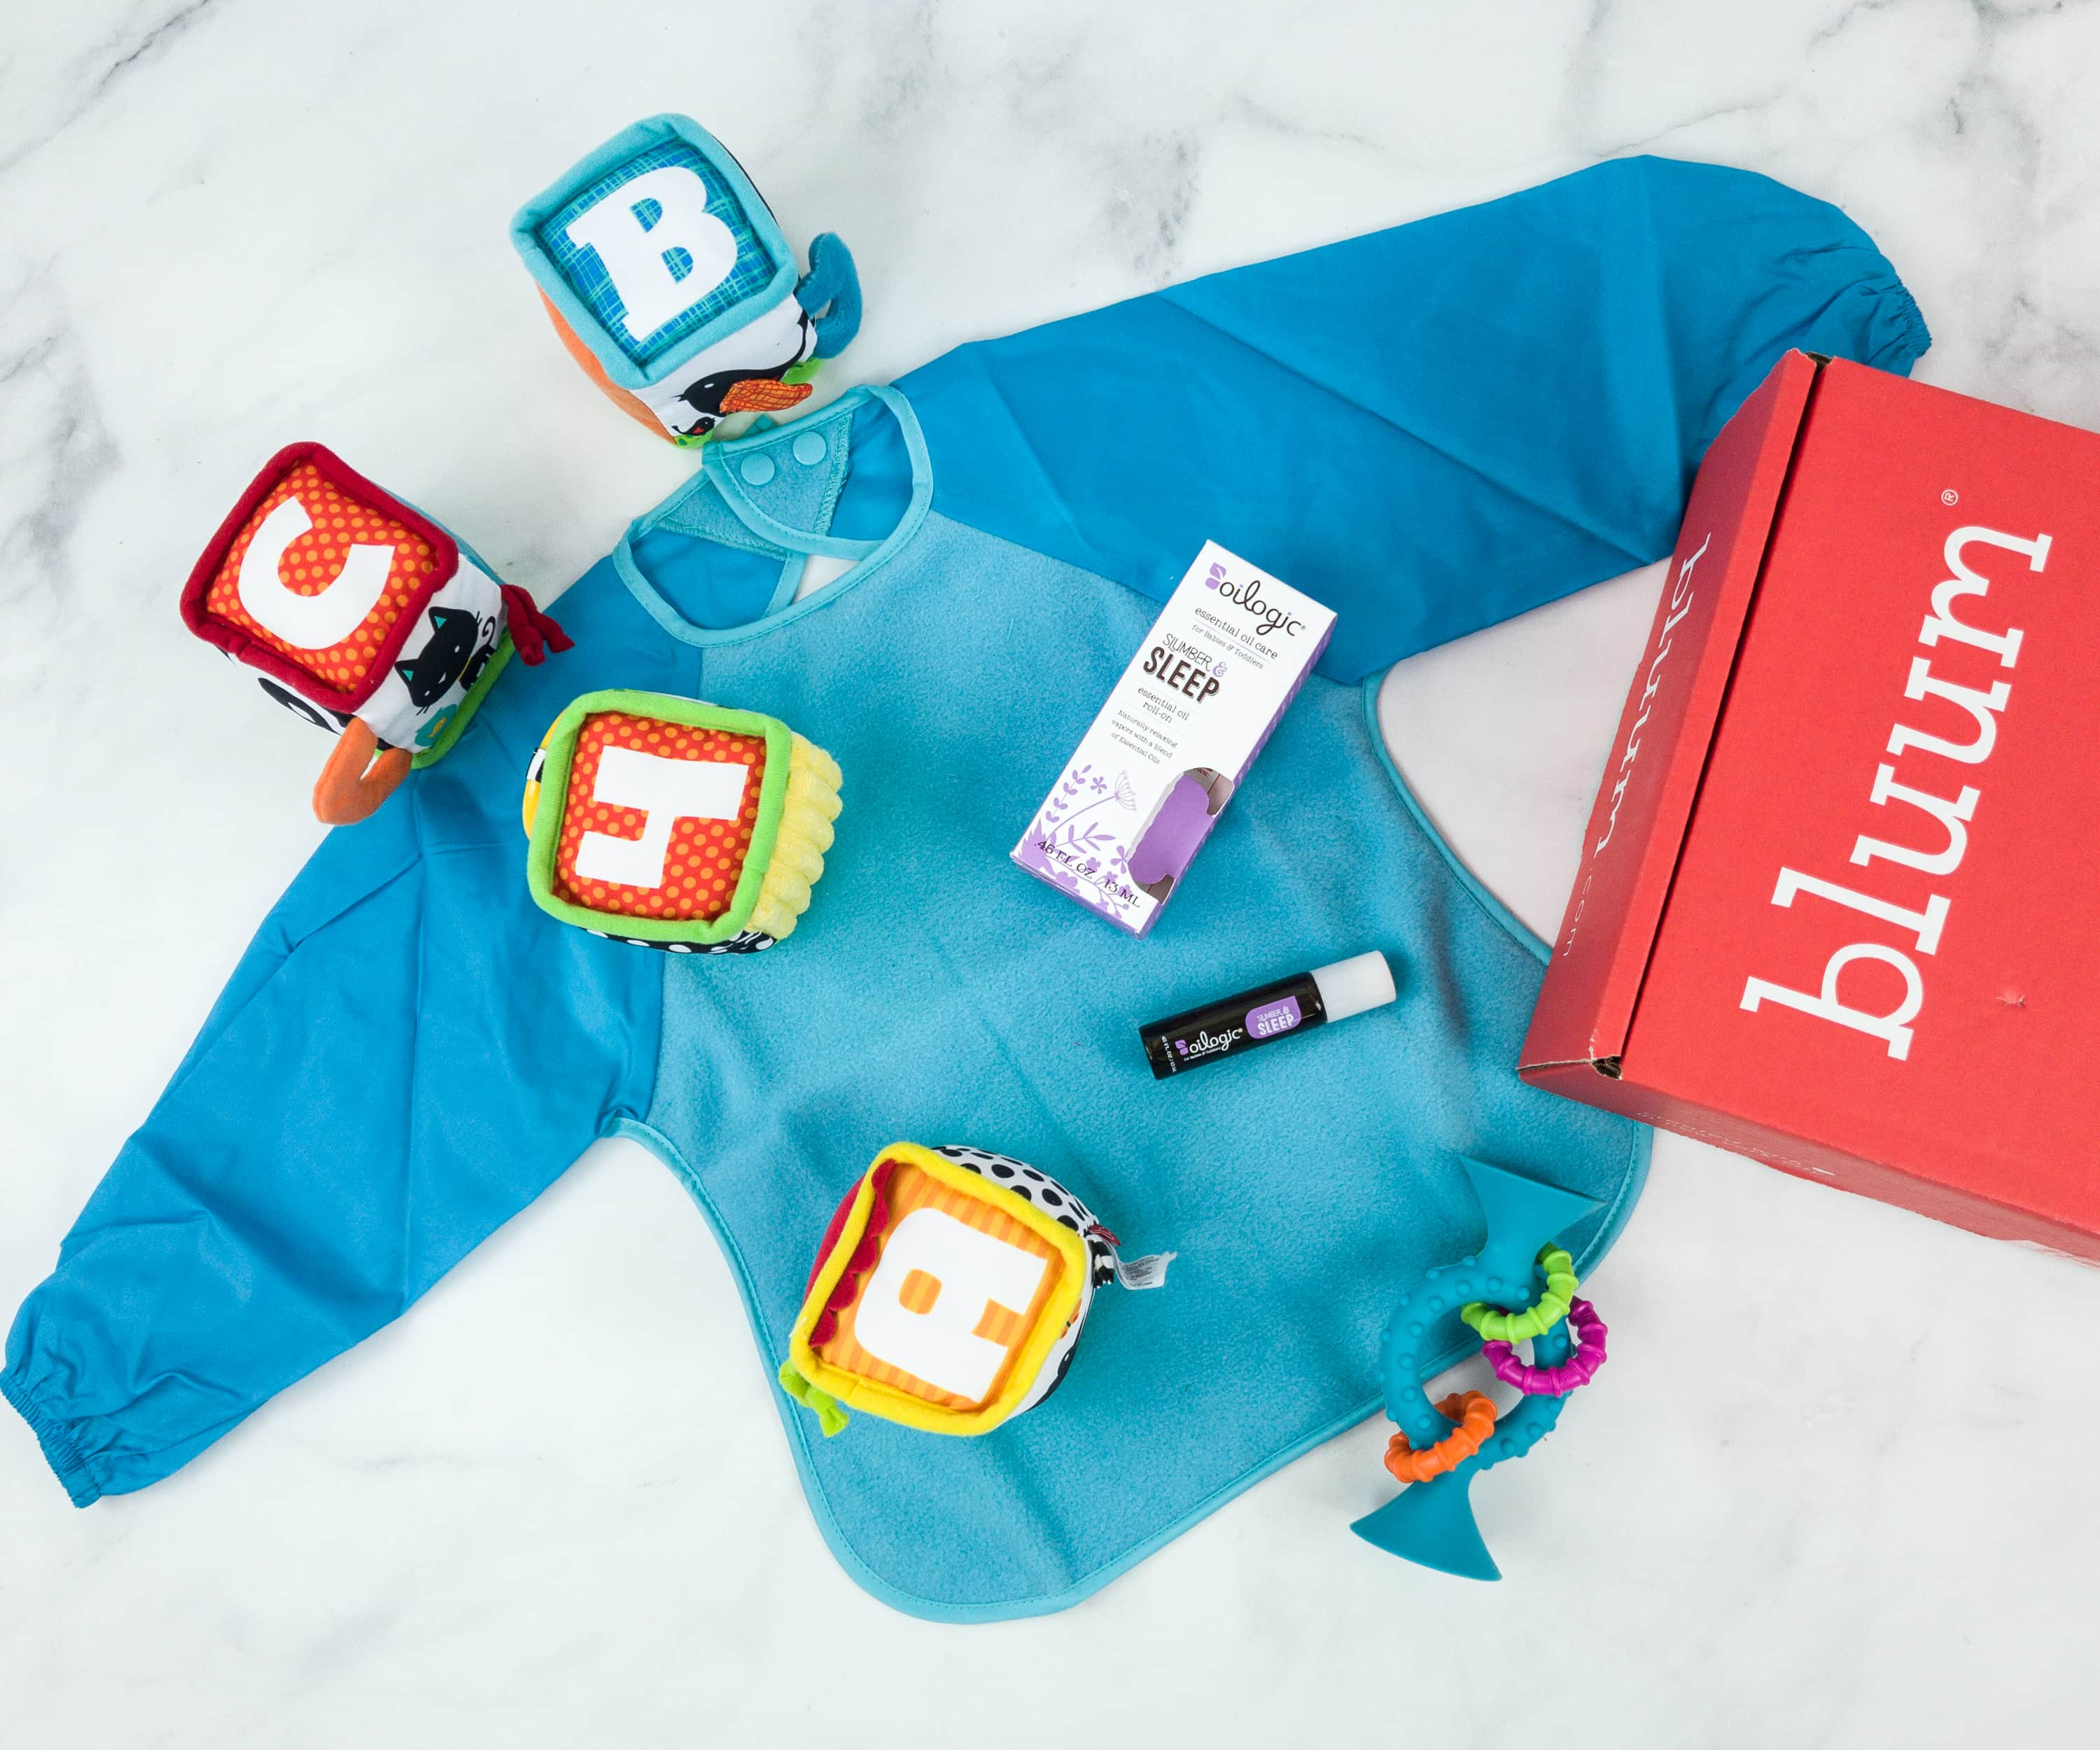 Bluum December 2018 Subscription Box Review + Coupon